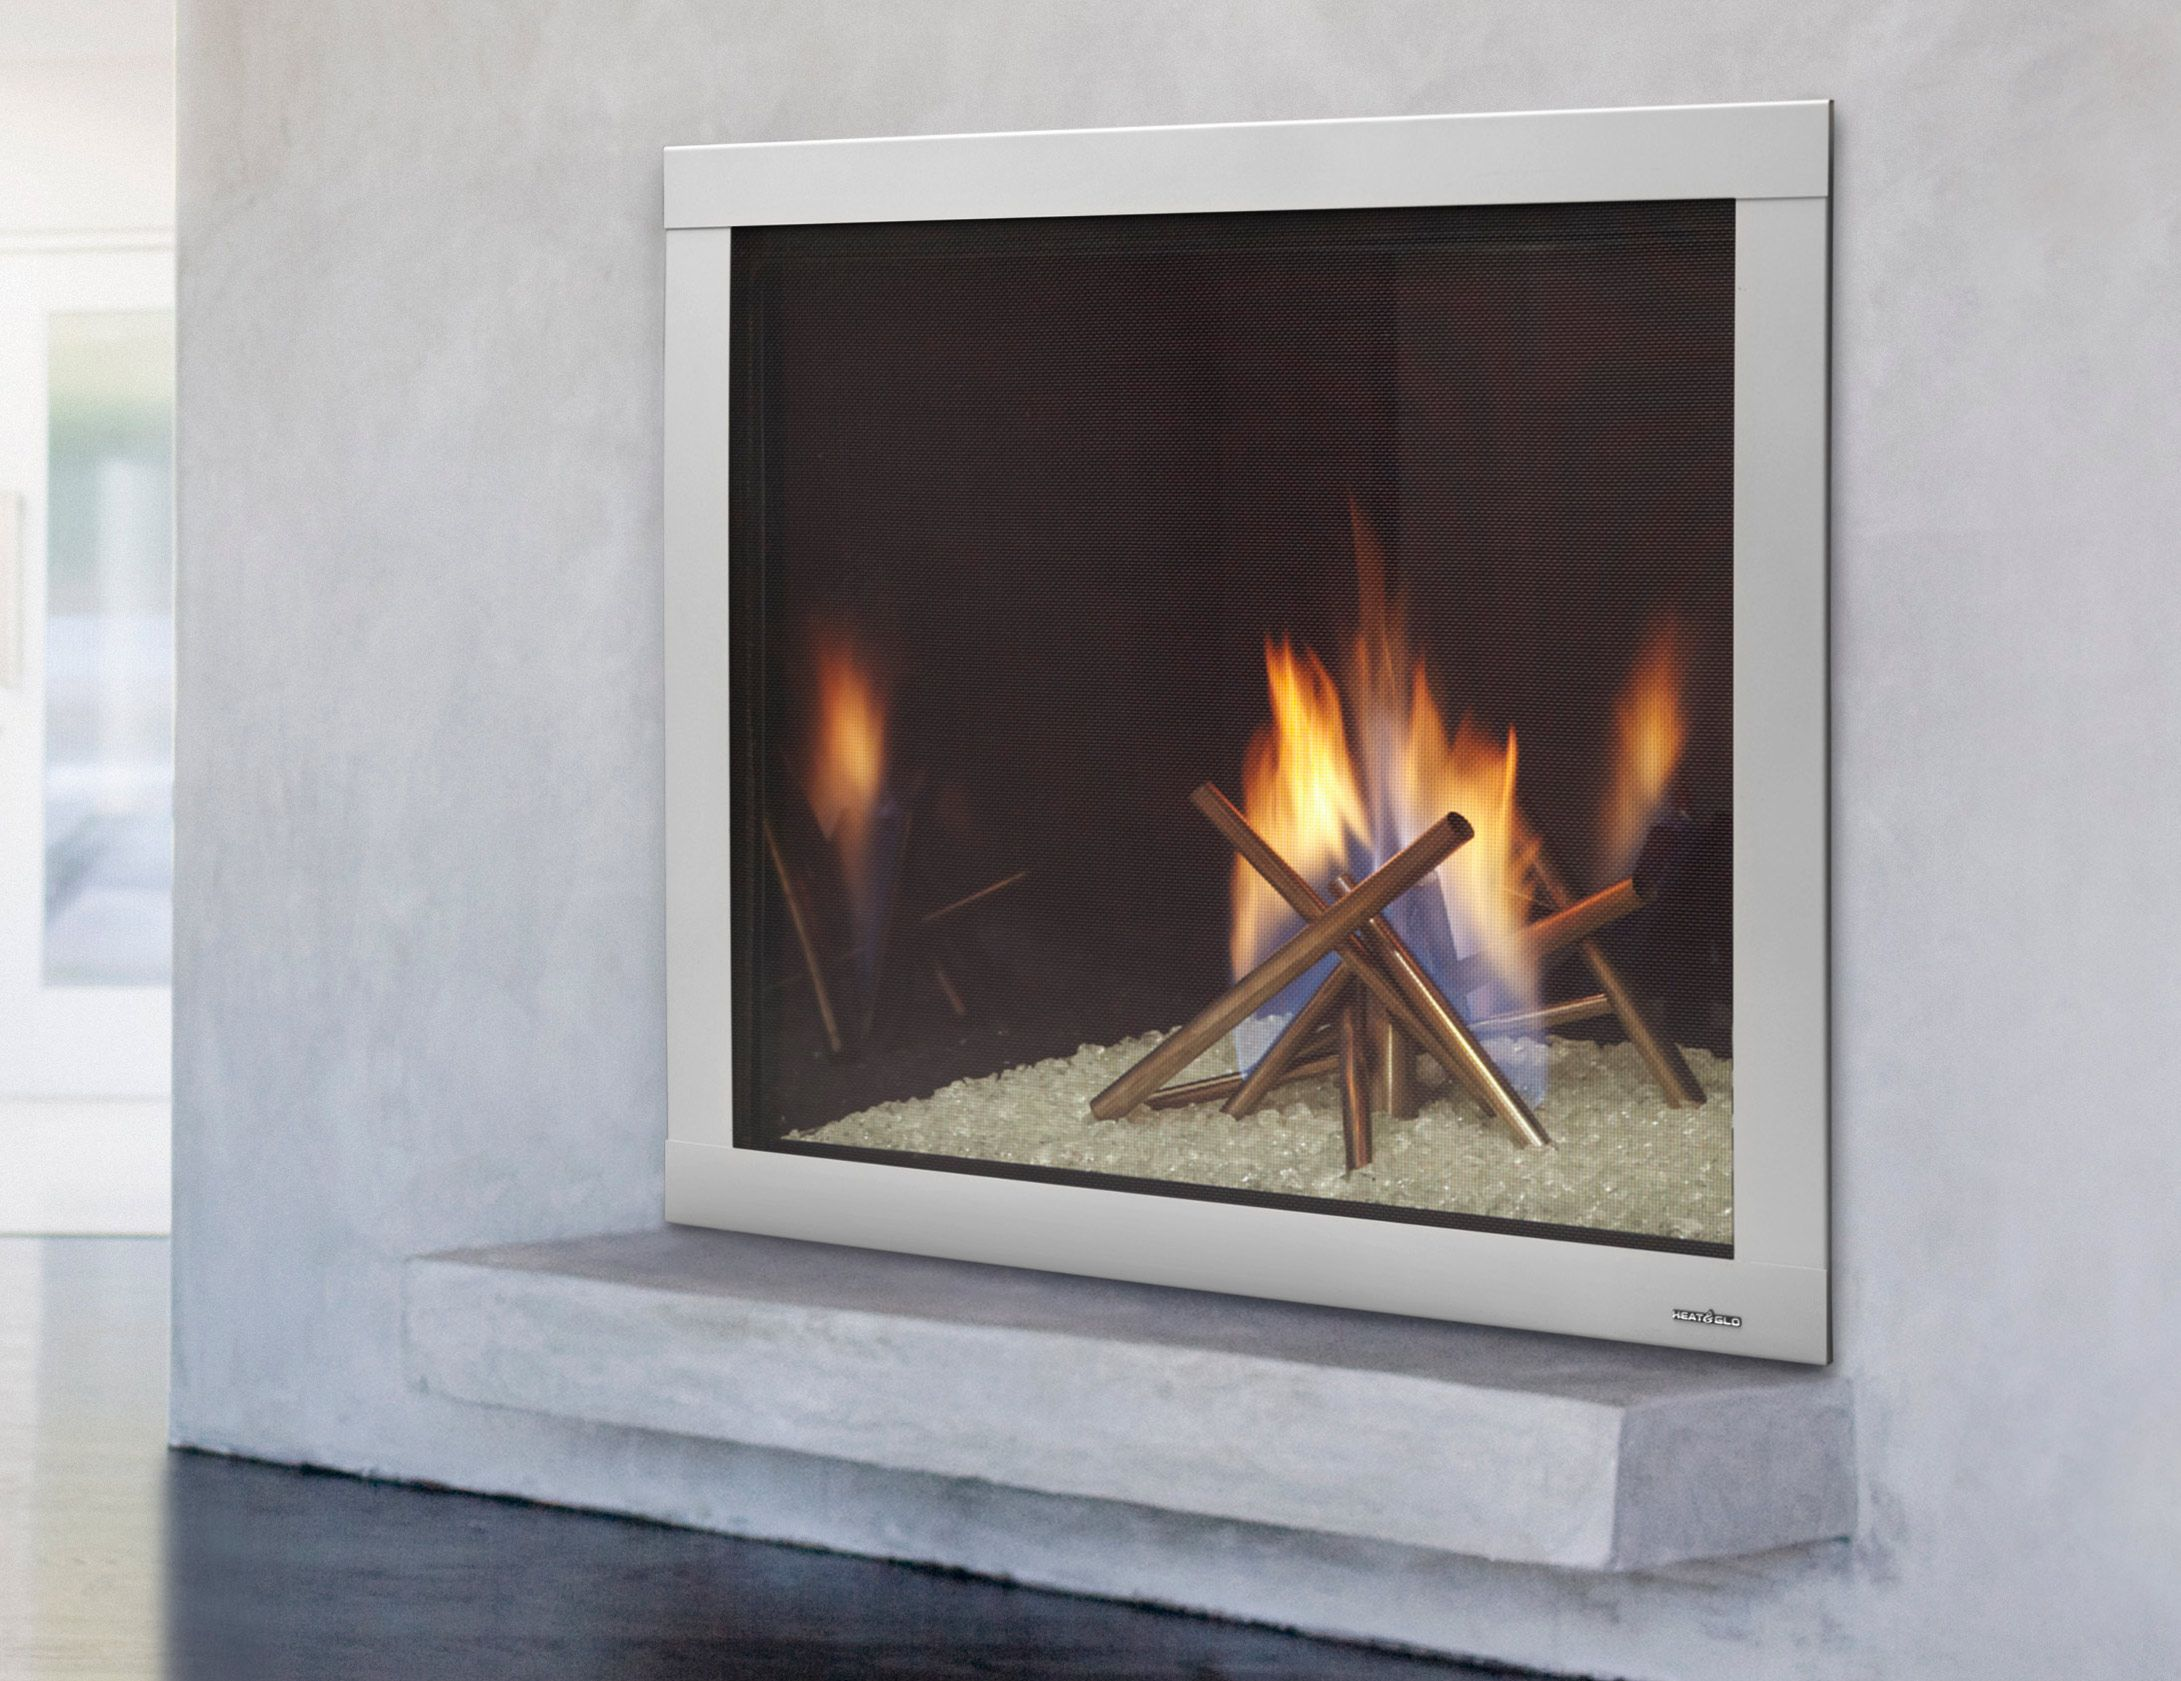 Modern Fireplace Insert Modern Gas Fireplace Inserts Design Modern Fireplace Modern